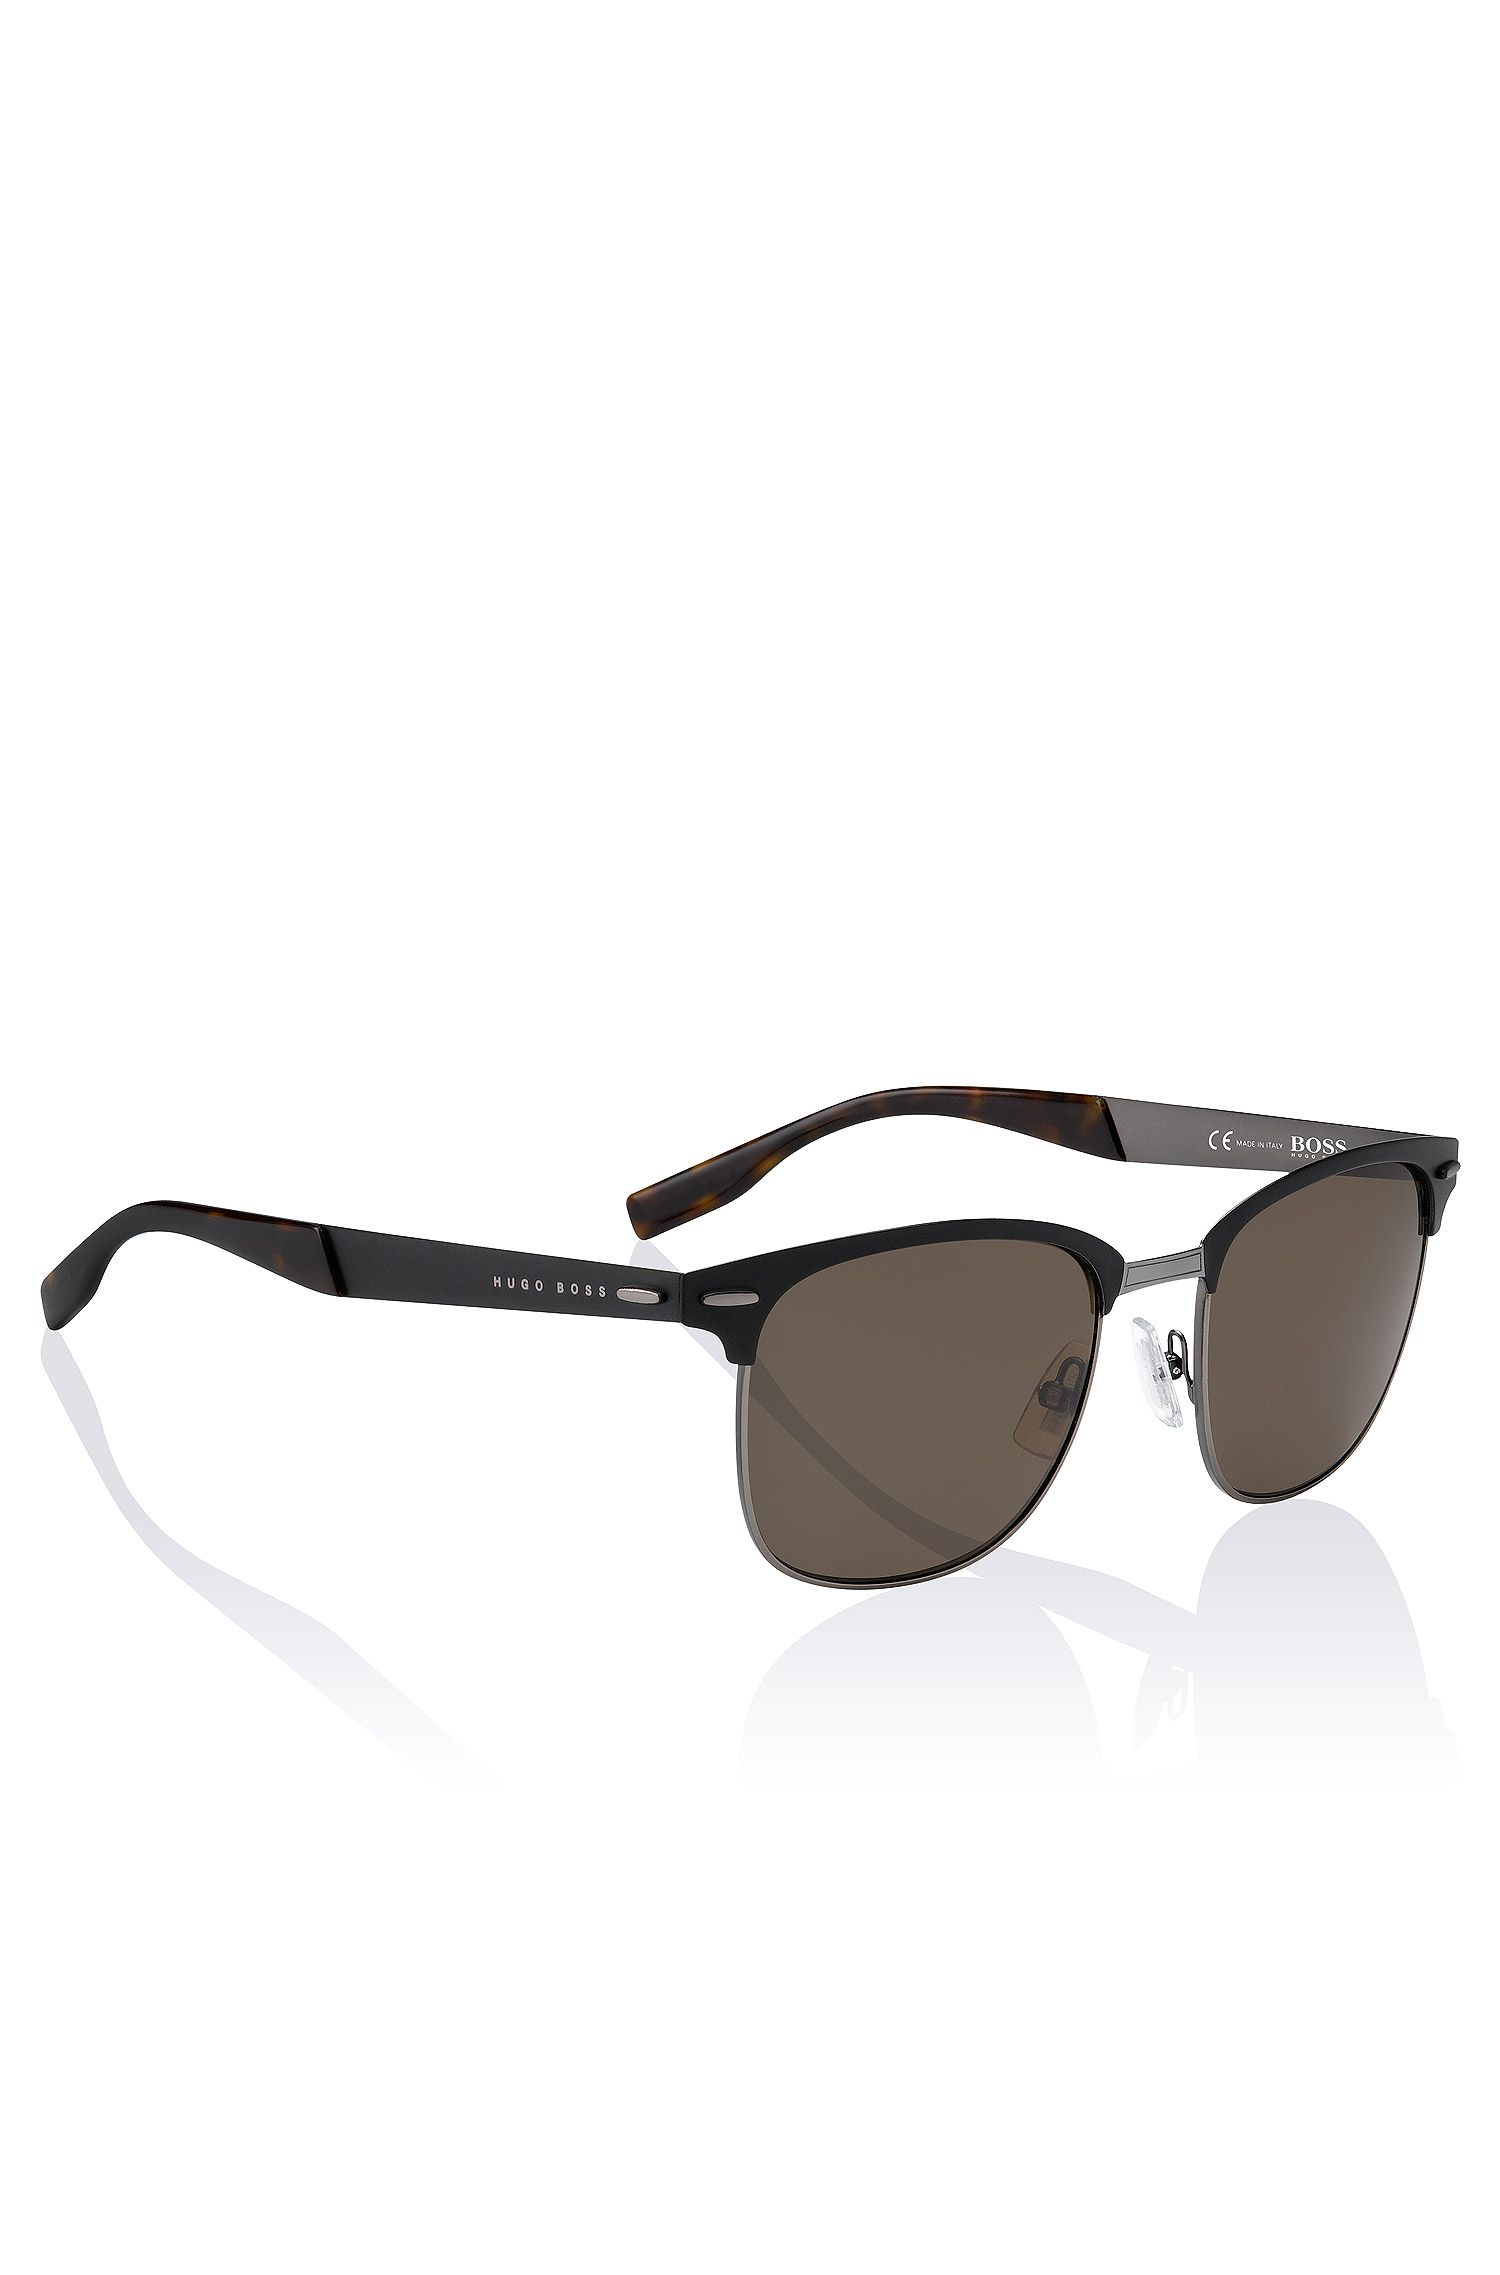 Sunglasses 'BOSS 0595/S'